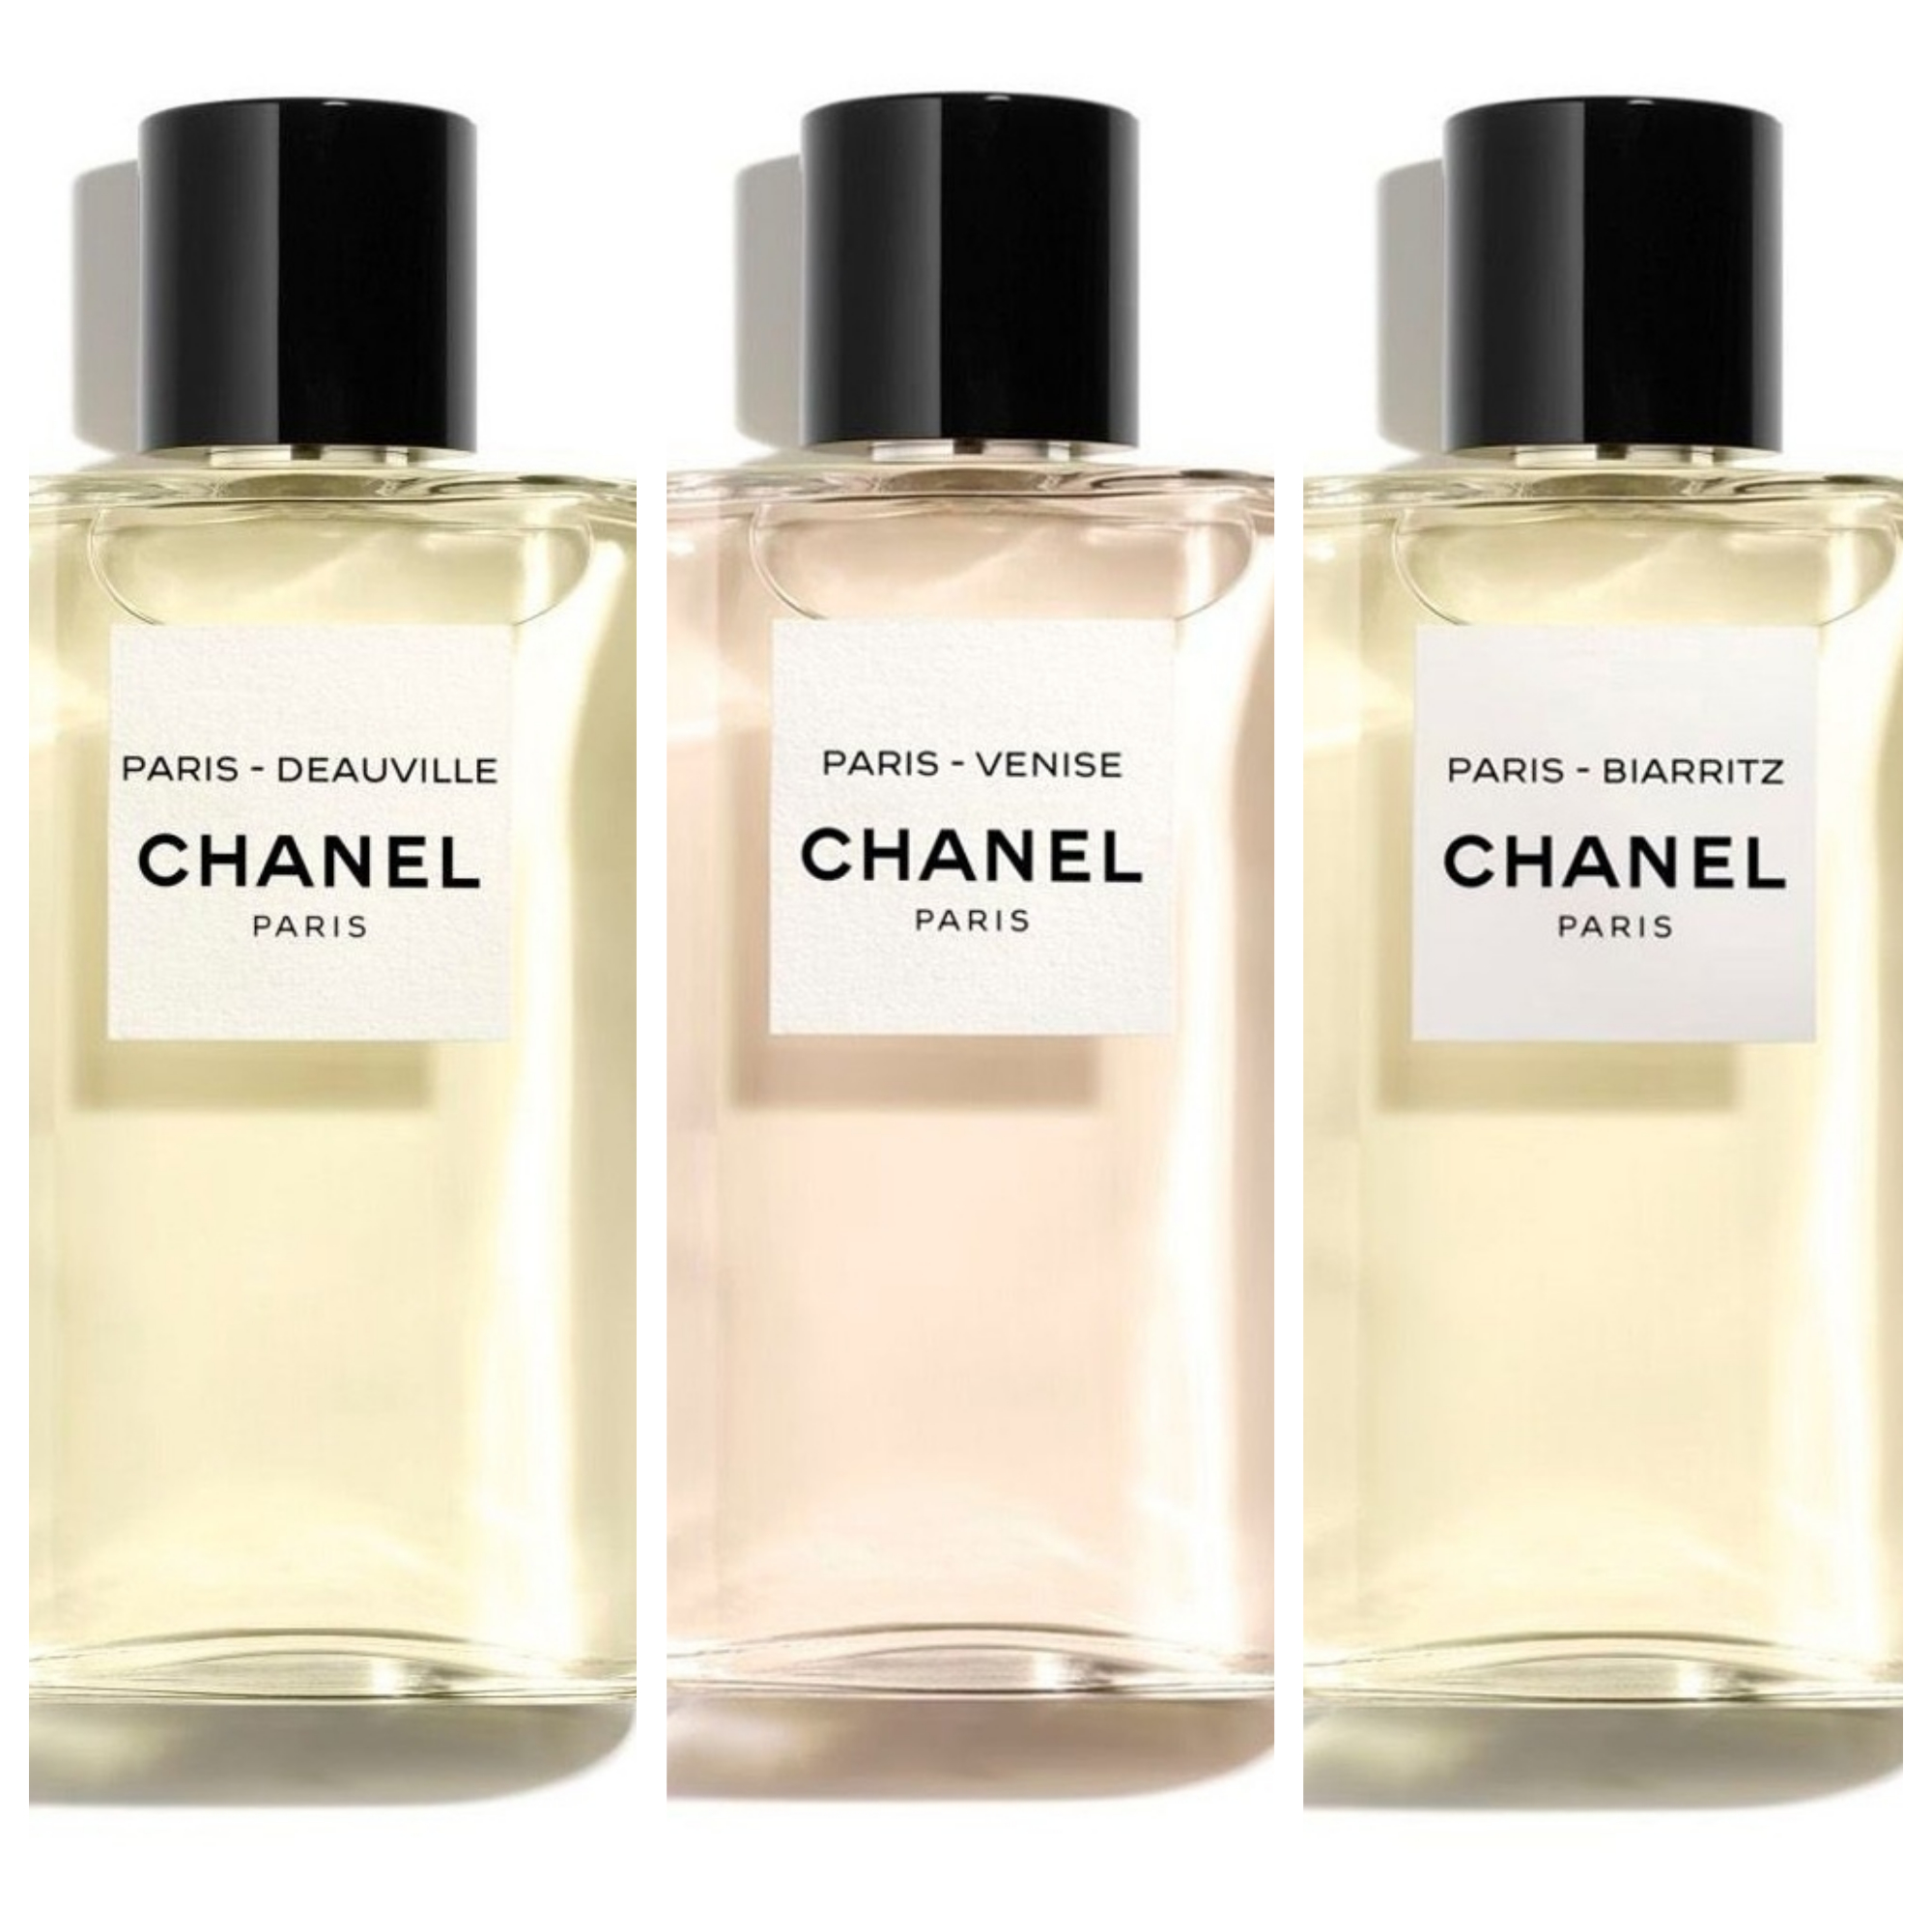 65f4064fa73109 Chanel Just Launched Three Unisex Fragrances That Will Change The Way You  Think About Chanel Perfume